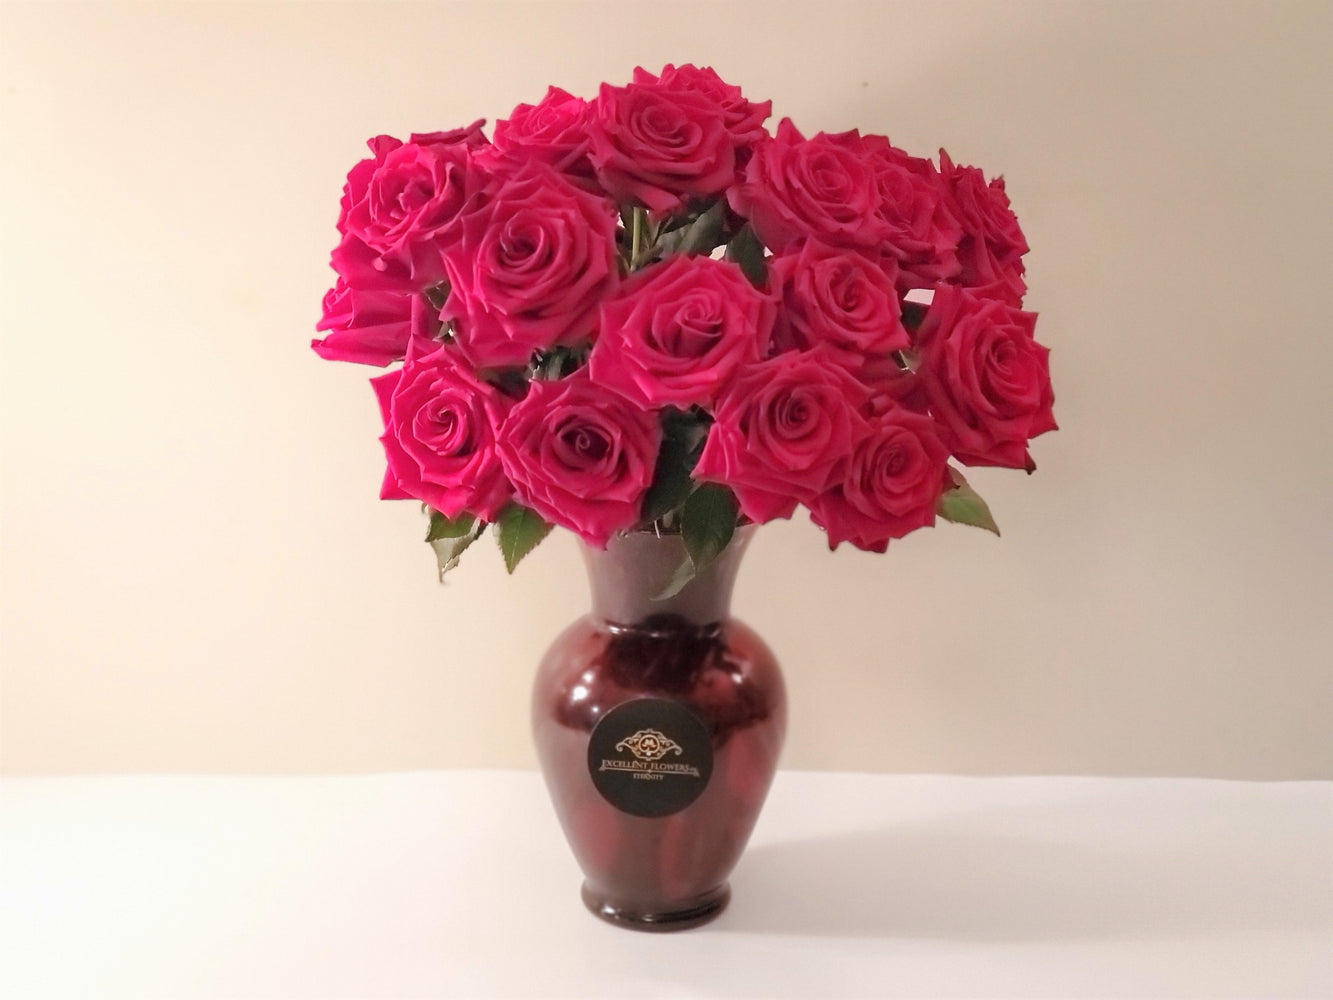 Rose Love  Arrangement with Vase I FREE SHIPPING